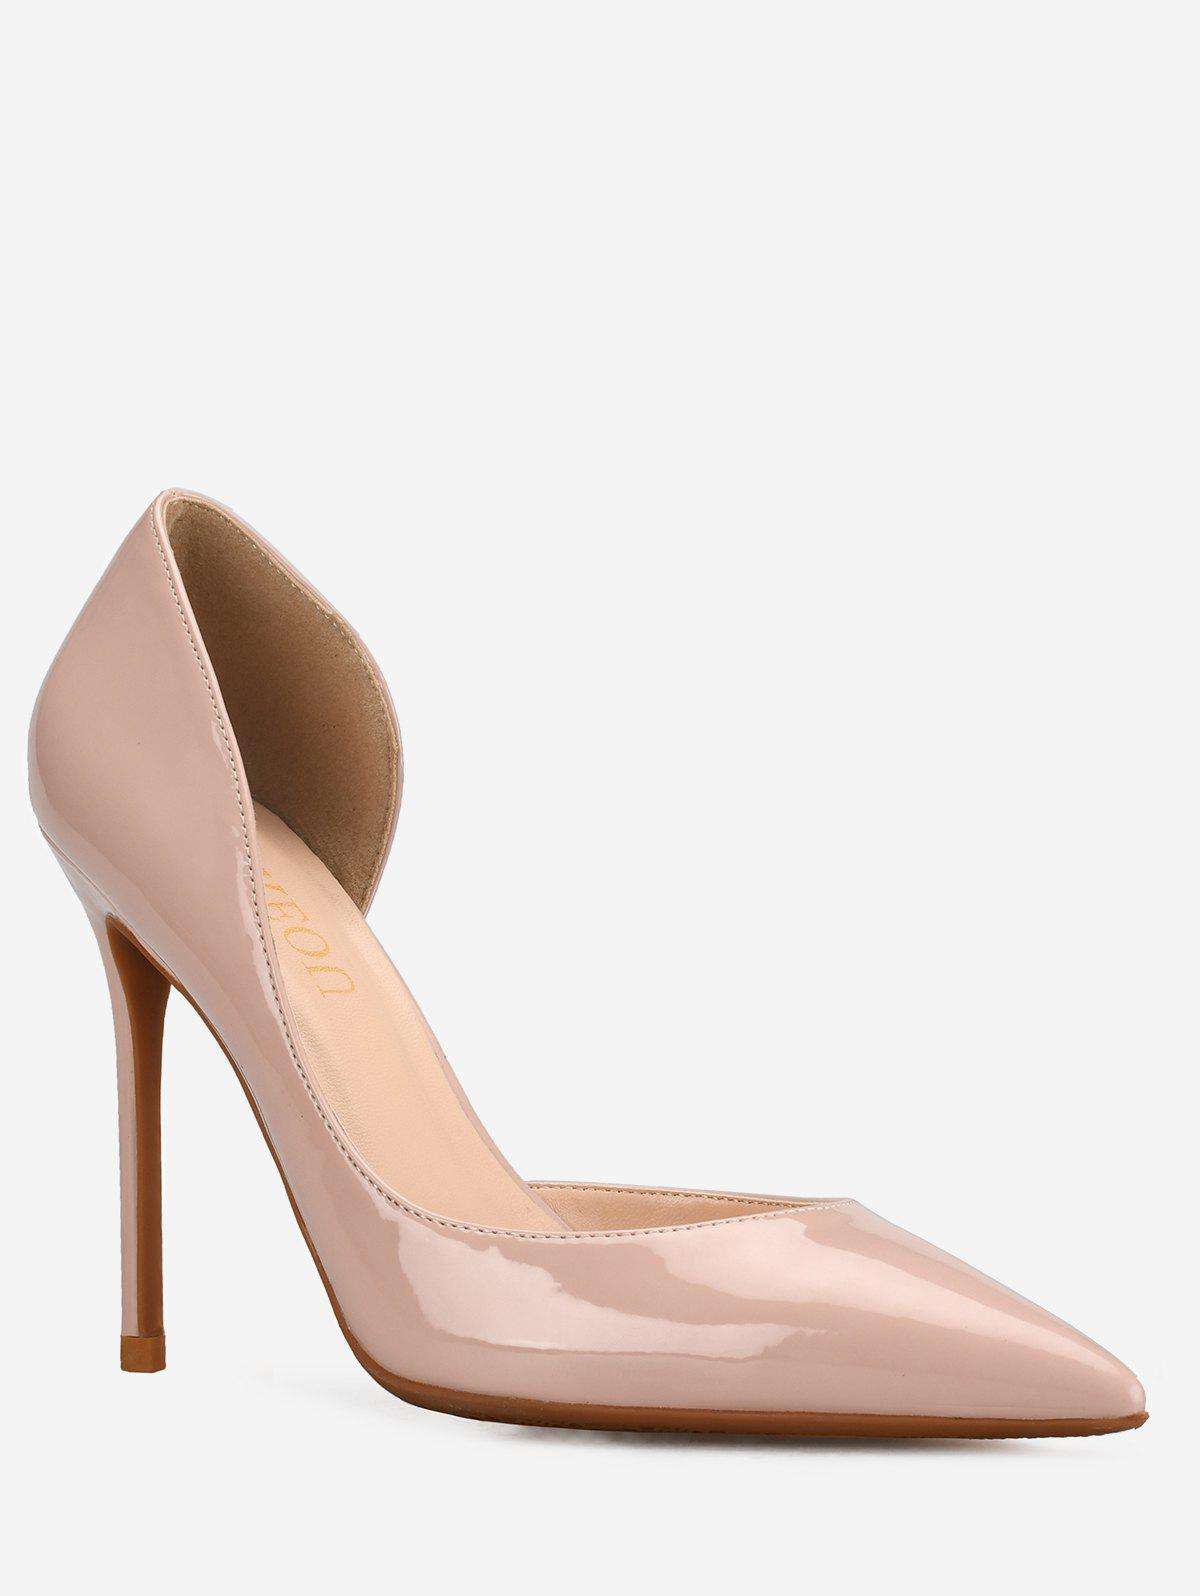 Online GOXEOU High Heel Chic Party Pointed Toe Pumps